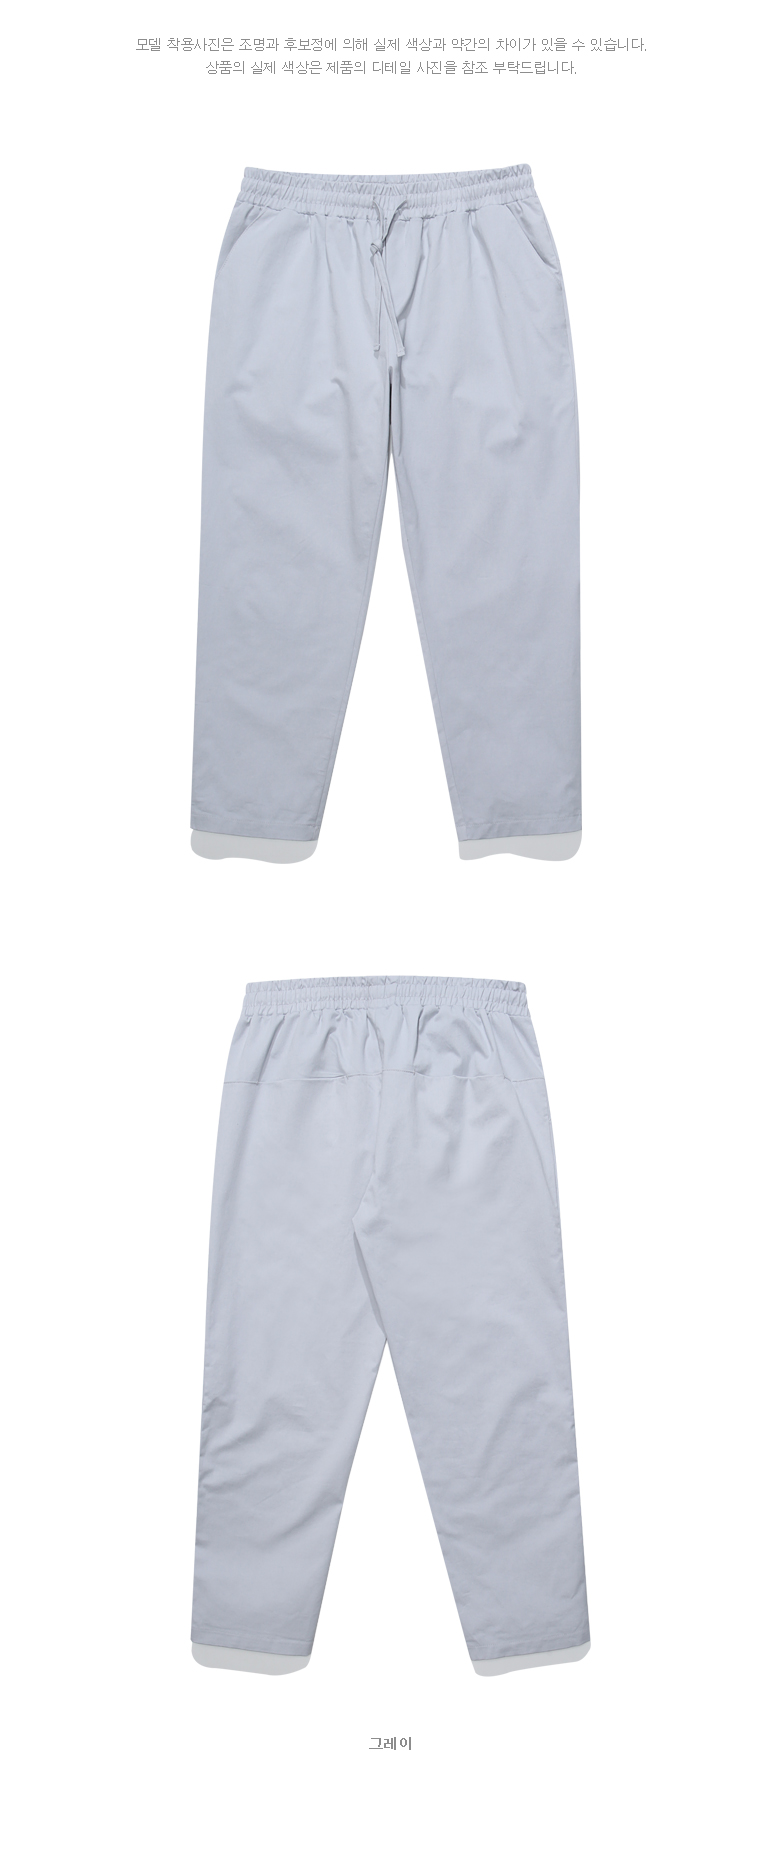 cropbangpants_detail_gray_01.jpg